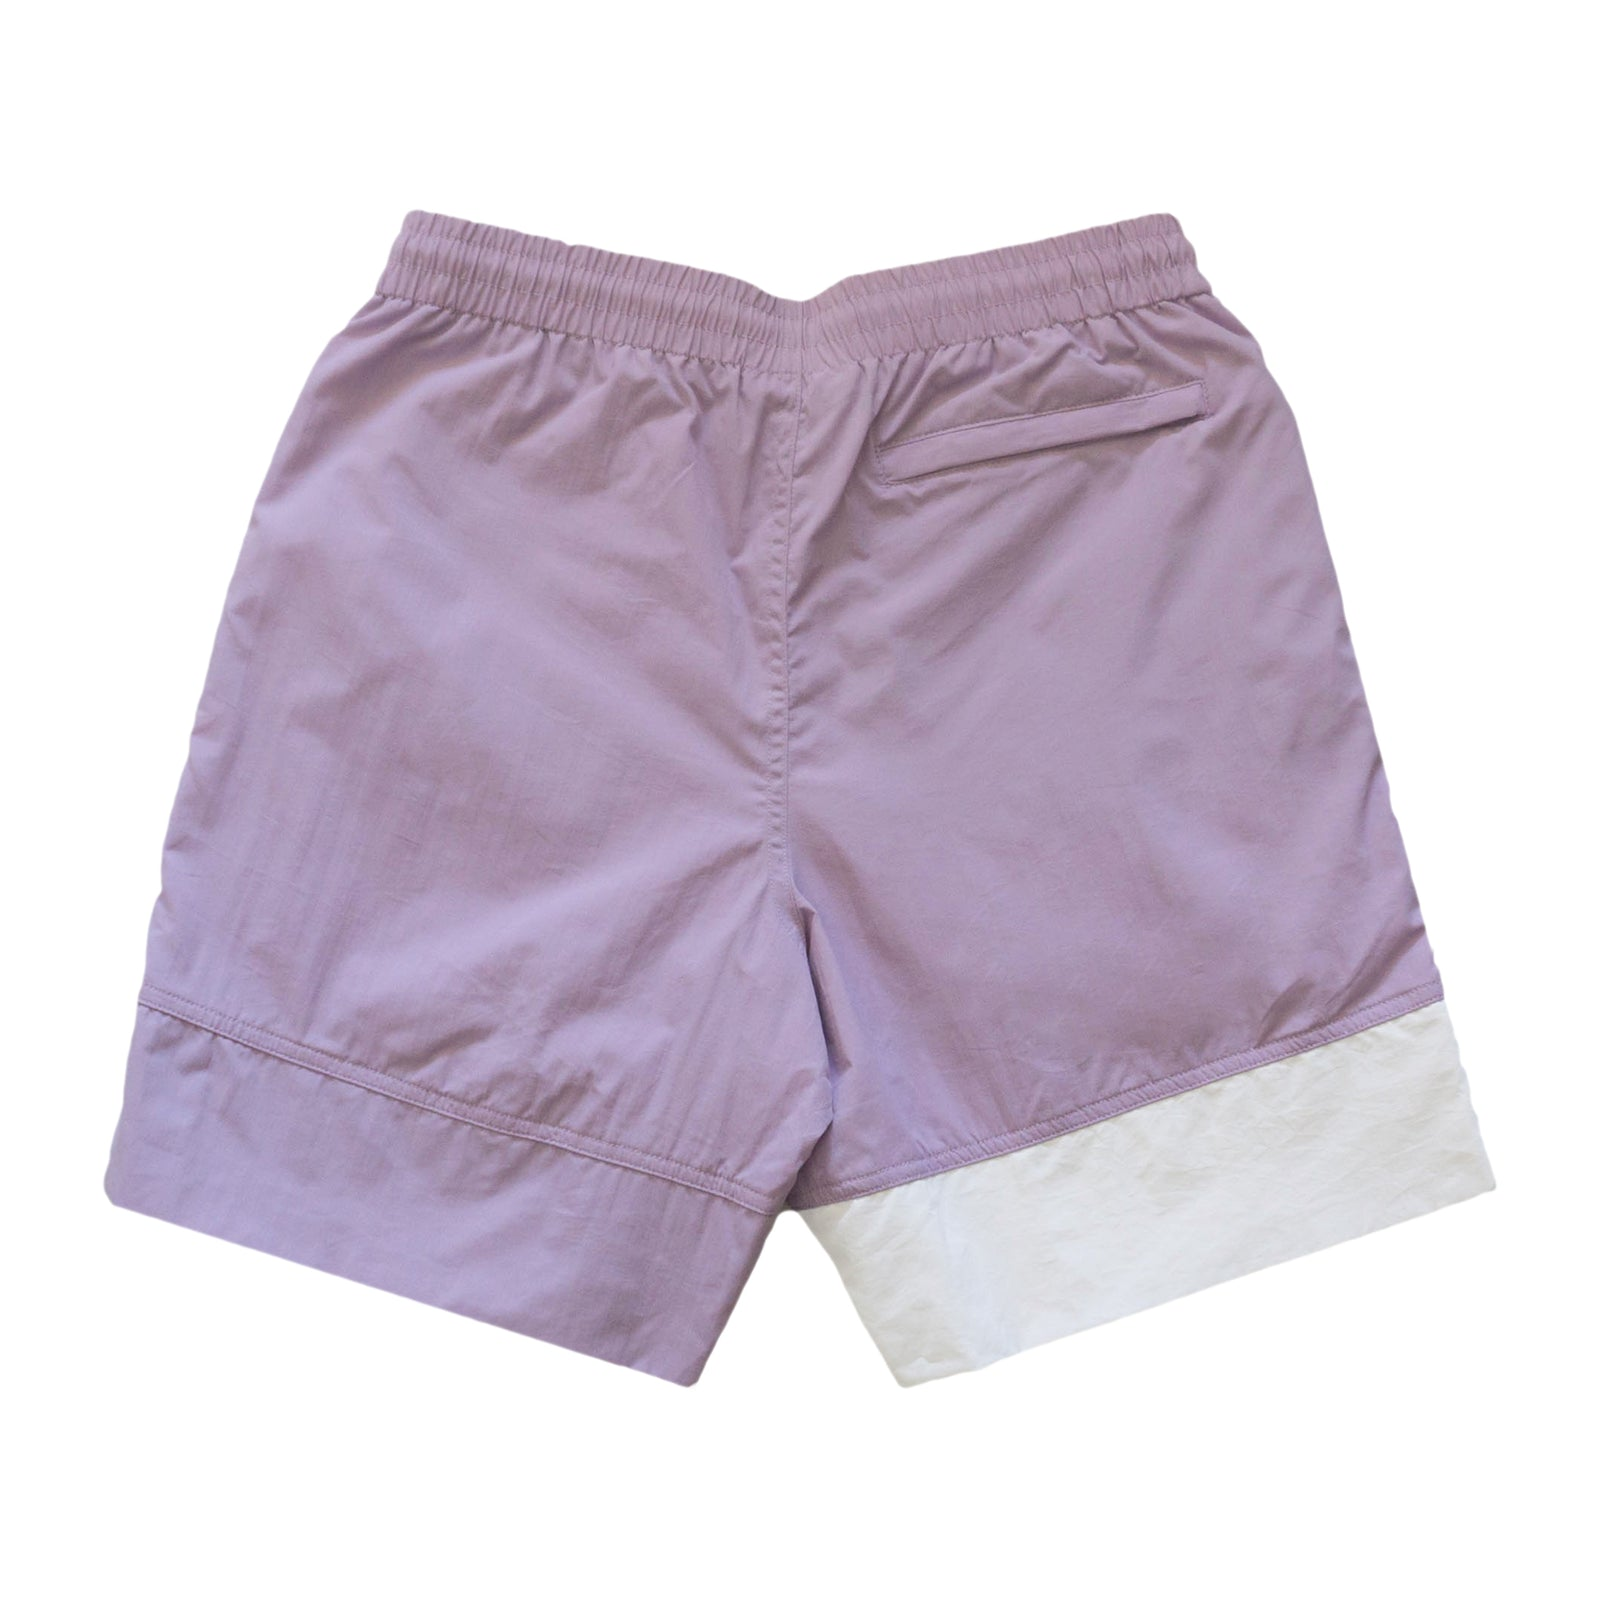 Logo Panel Water Shorts - Lavender/White